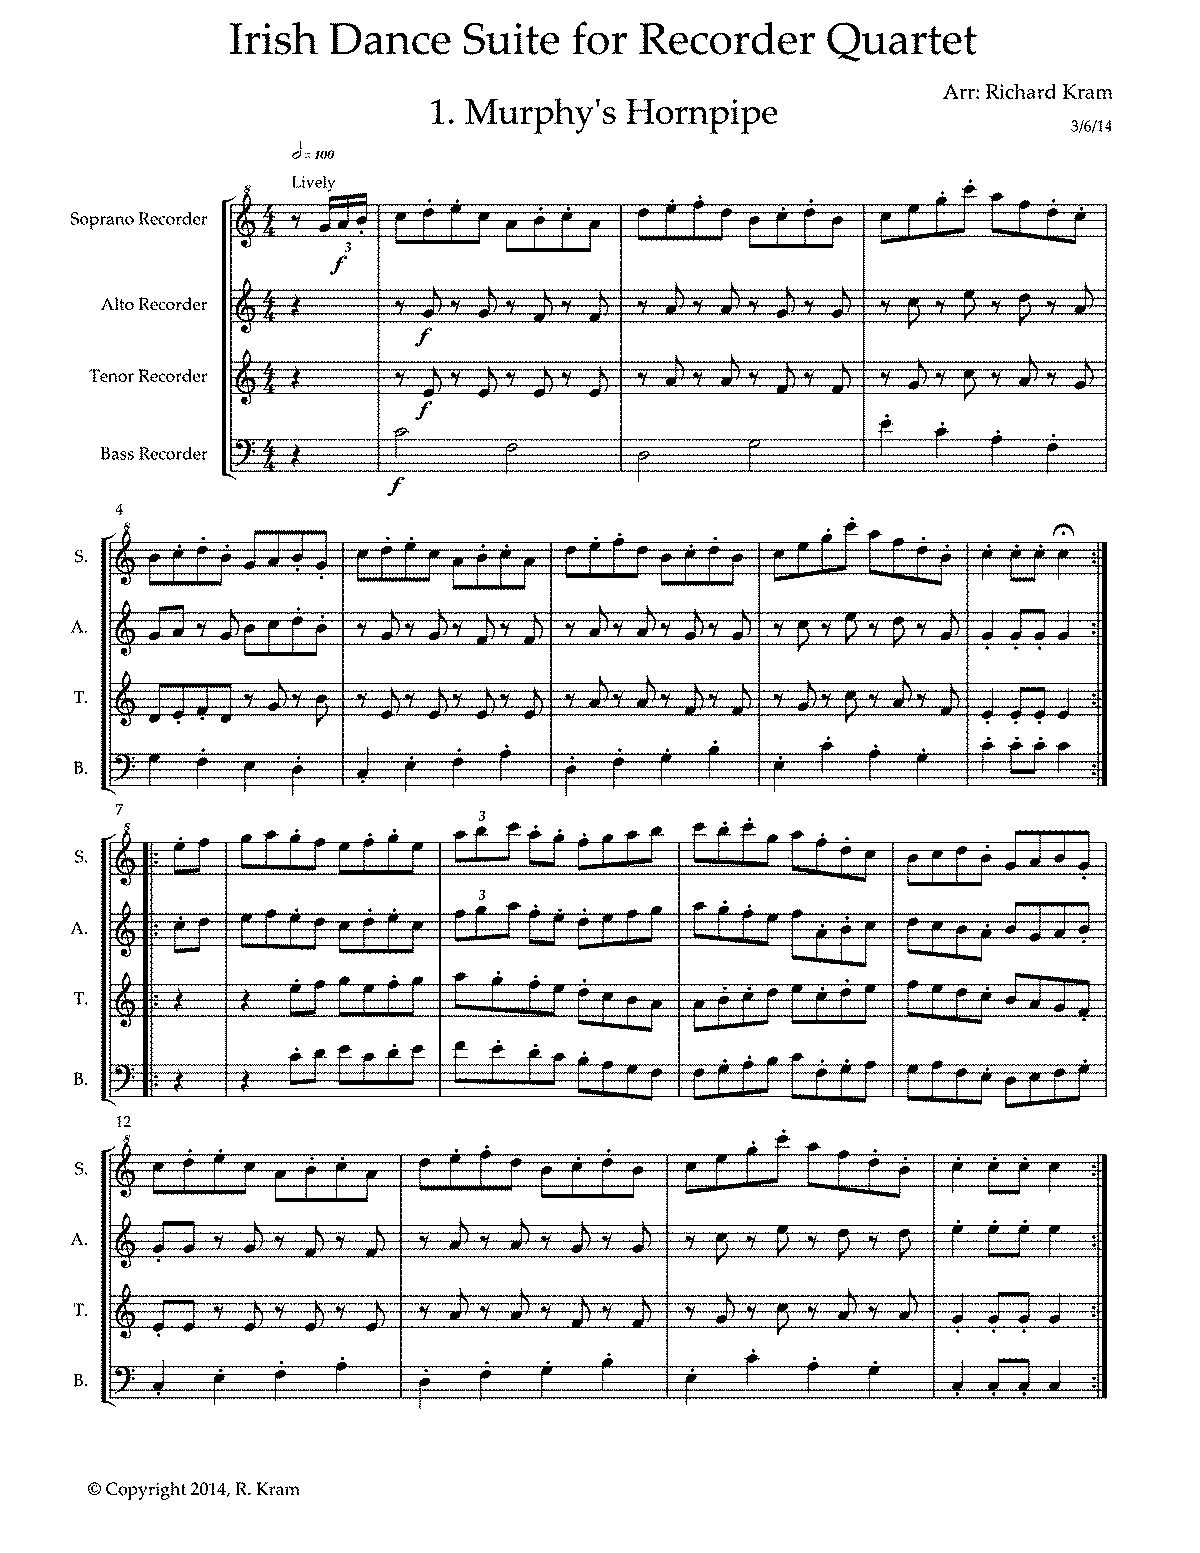 PMLP515915-1 - Murphy's Hornpipe for 4 Recorders.pdf